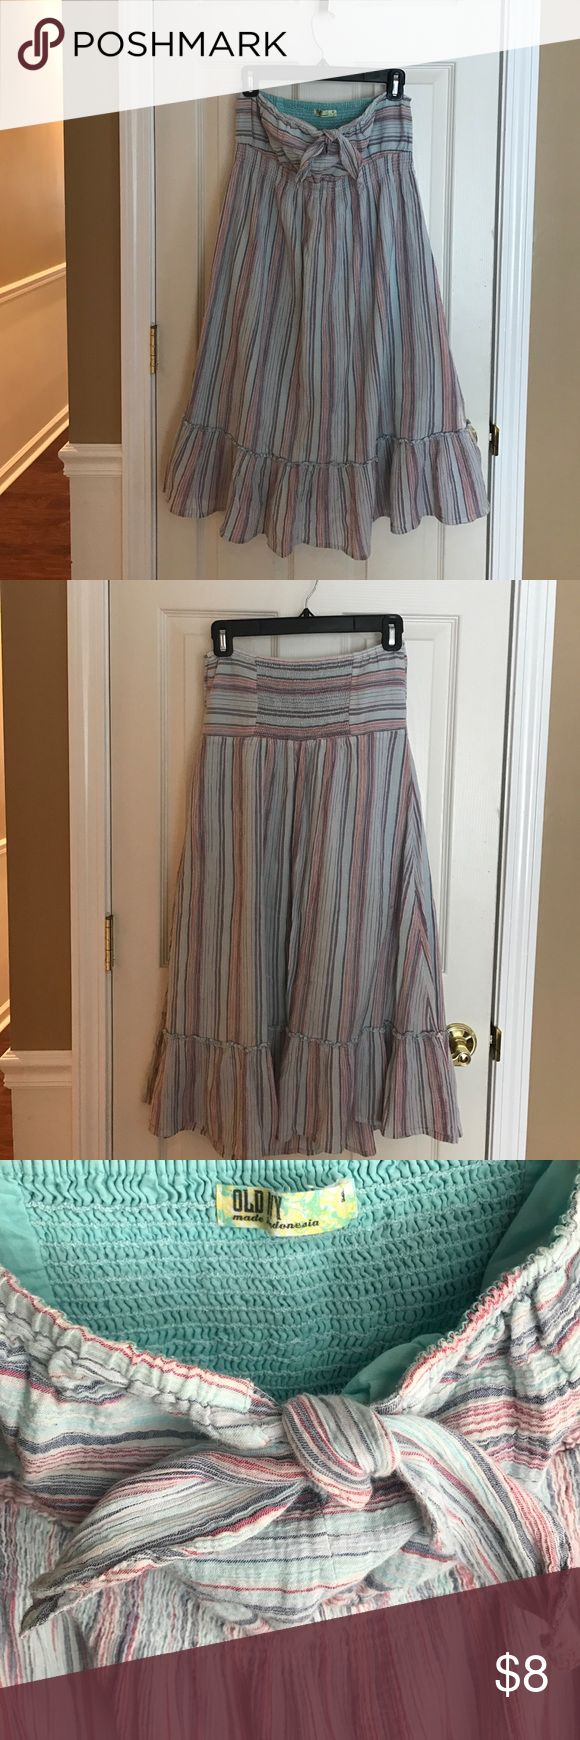 """Old Navy strapless sundress Gauzy cotton in chambray stripe with hints of red and navy. Smocking under bustline and on back for a snug fit. Ruffle detail along bottom and tie along bustline. Length along side seam is approximately 30"""" total, along under bust is about 14"""", from top elastic to under bust 5"""" and width along bottom hem is about 32"""". In excellent condition. No signs of wear or stains. Old Navy Dresses"""